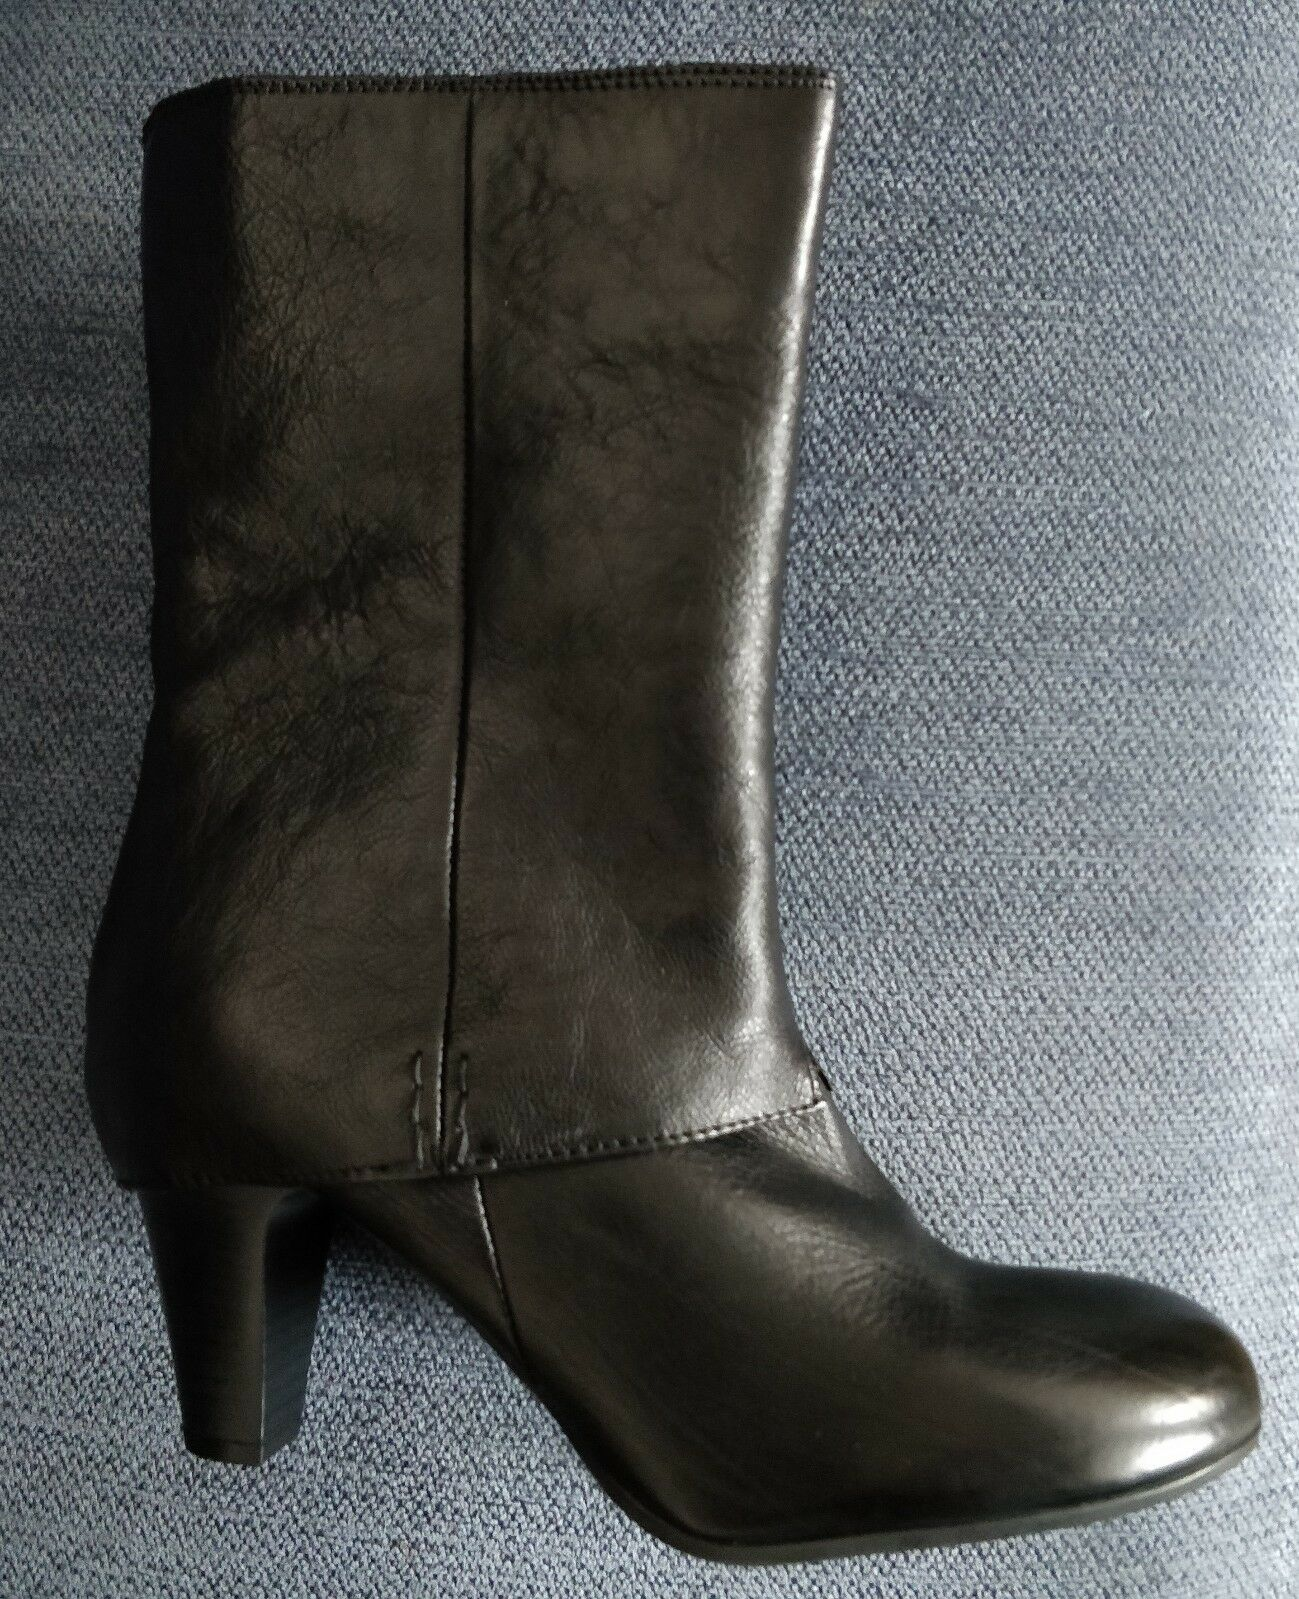 Ladies Clarks Black Leather Boots size 7